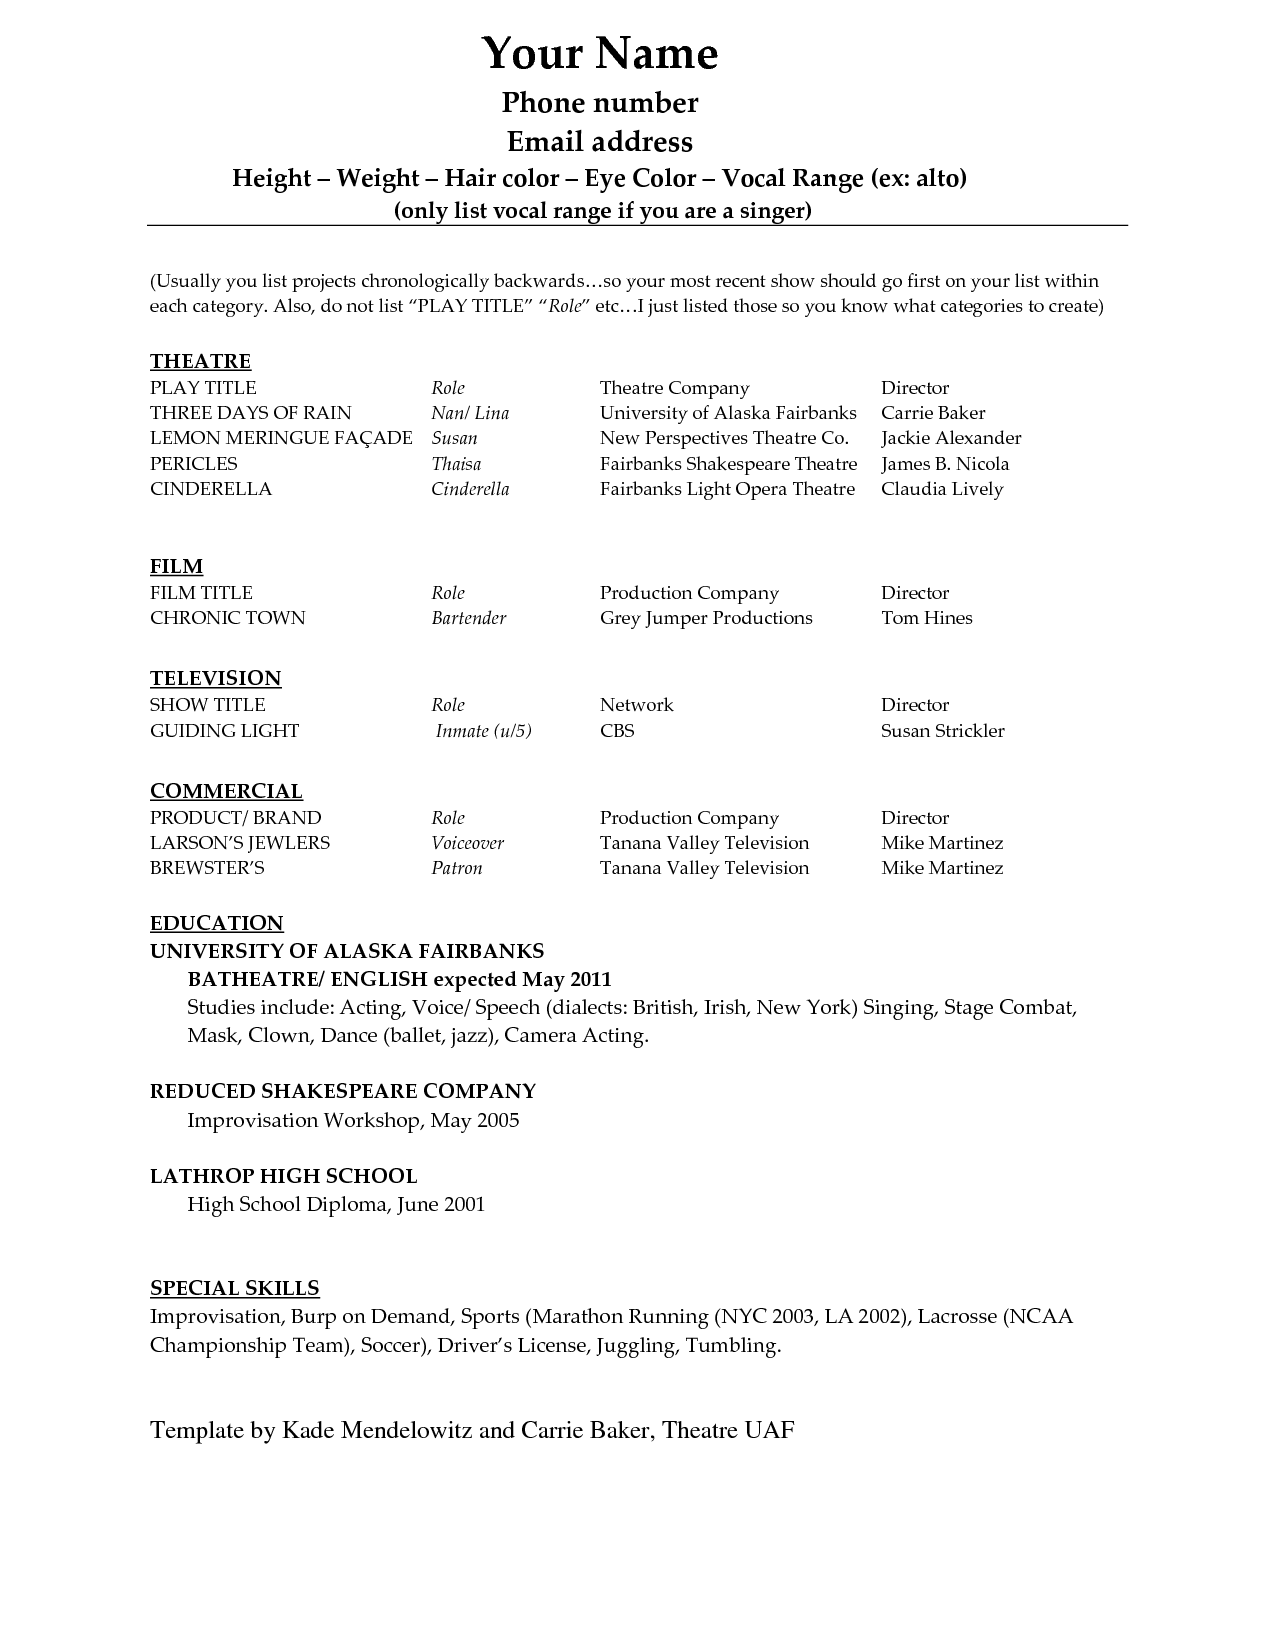 Acting resume template download free httpresumecareer resume best format resume templates for dance teachers sample resume amp templates yelopaper Gallery